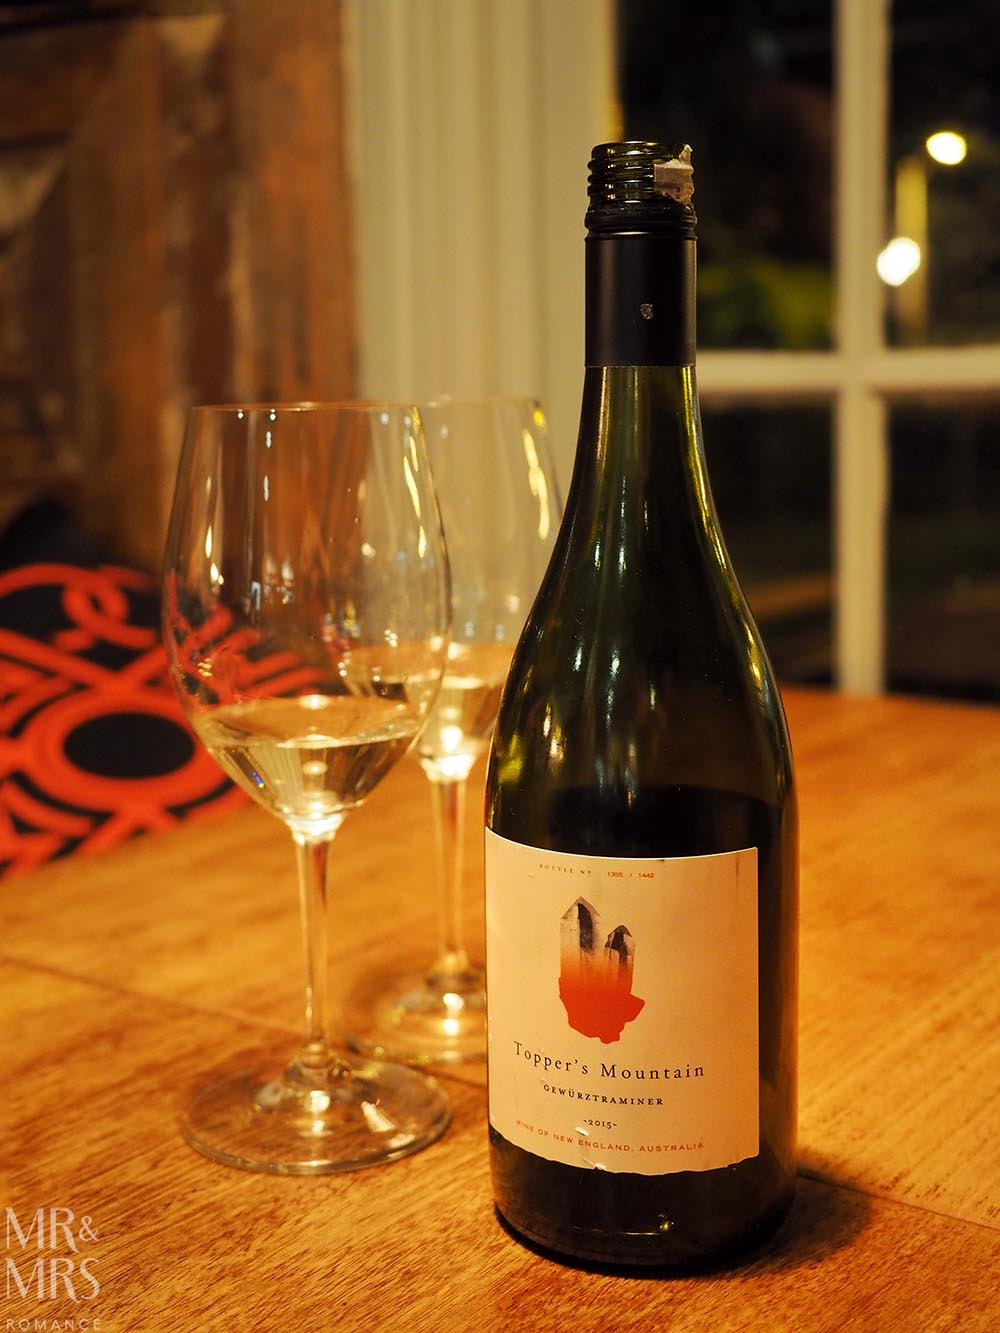 Gewurztraminer wine review - Topper's Mountain